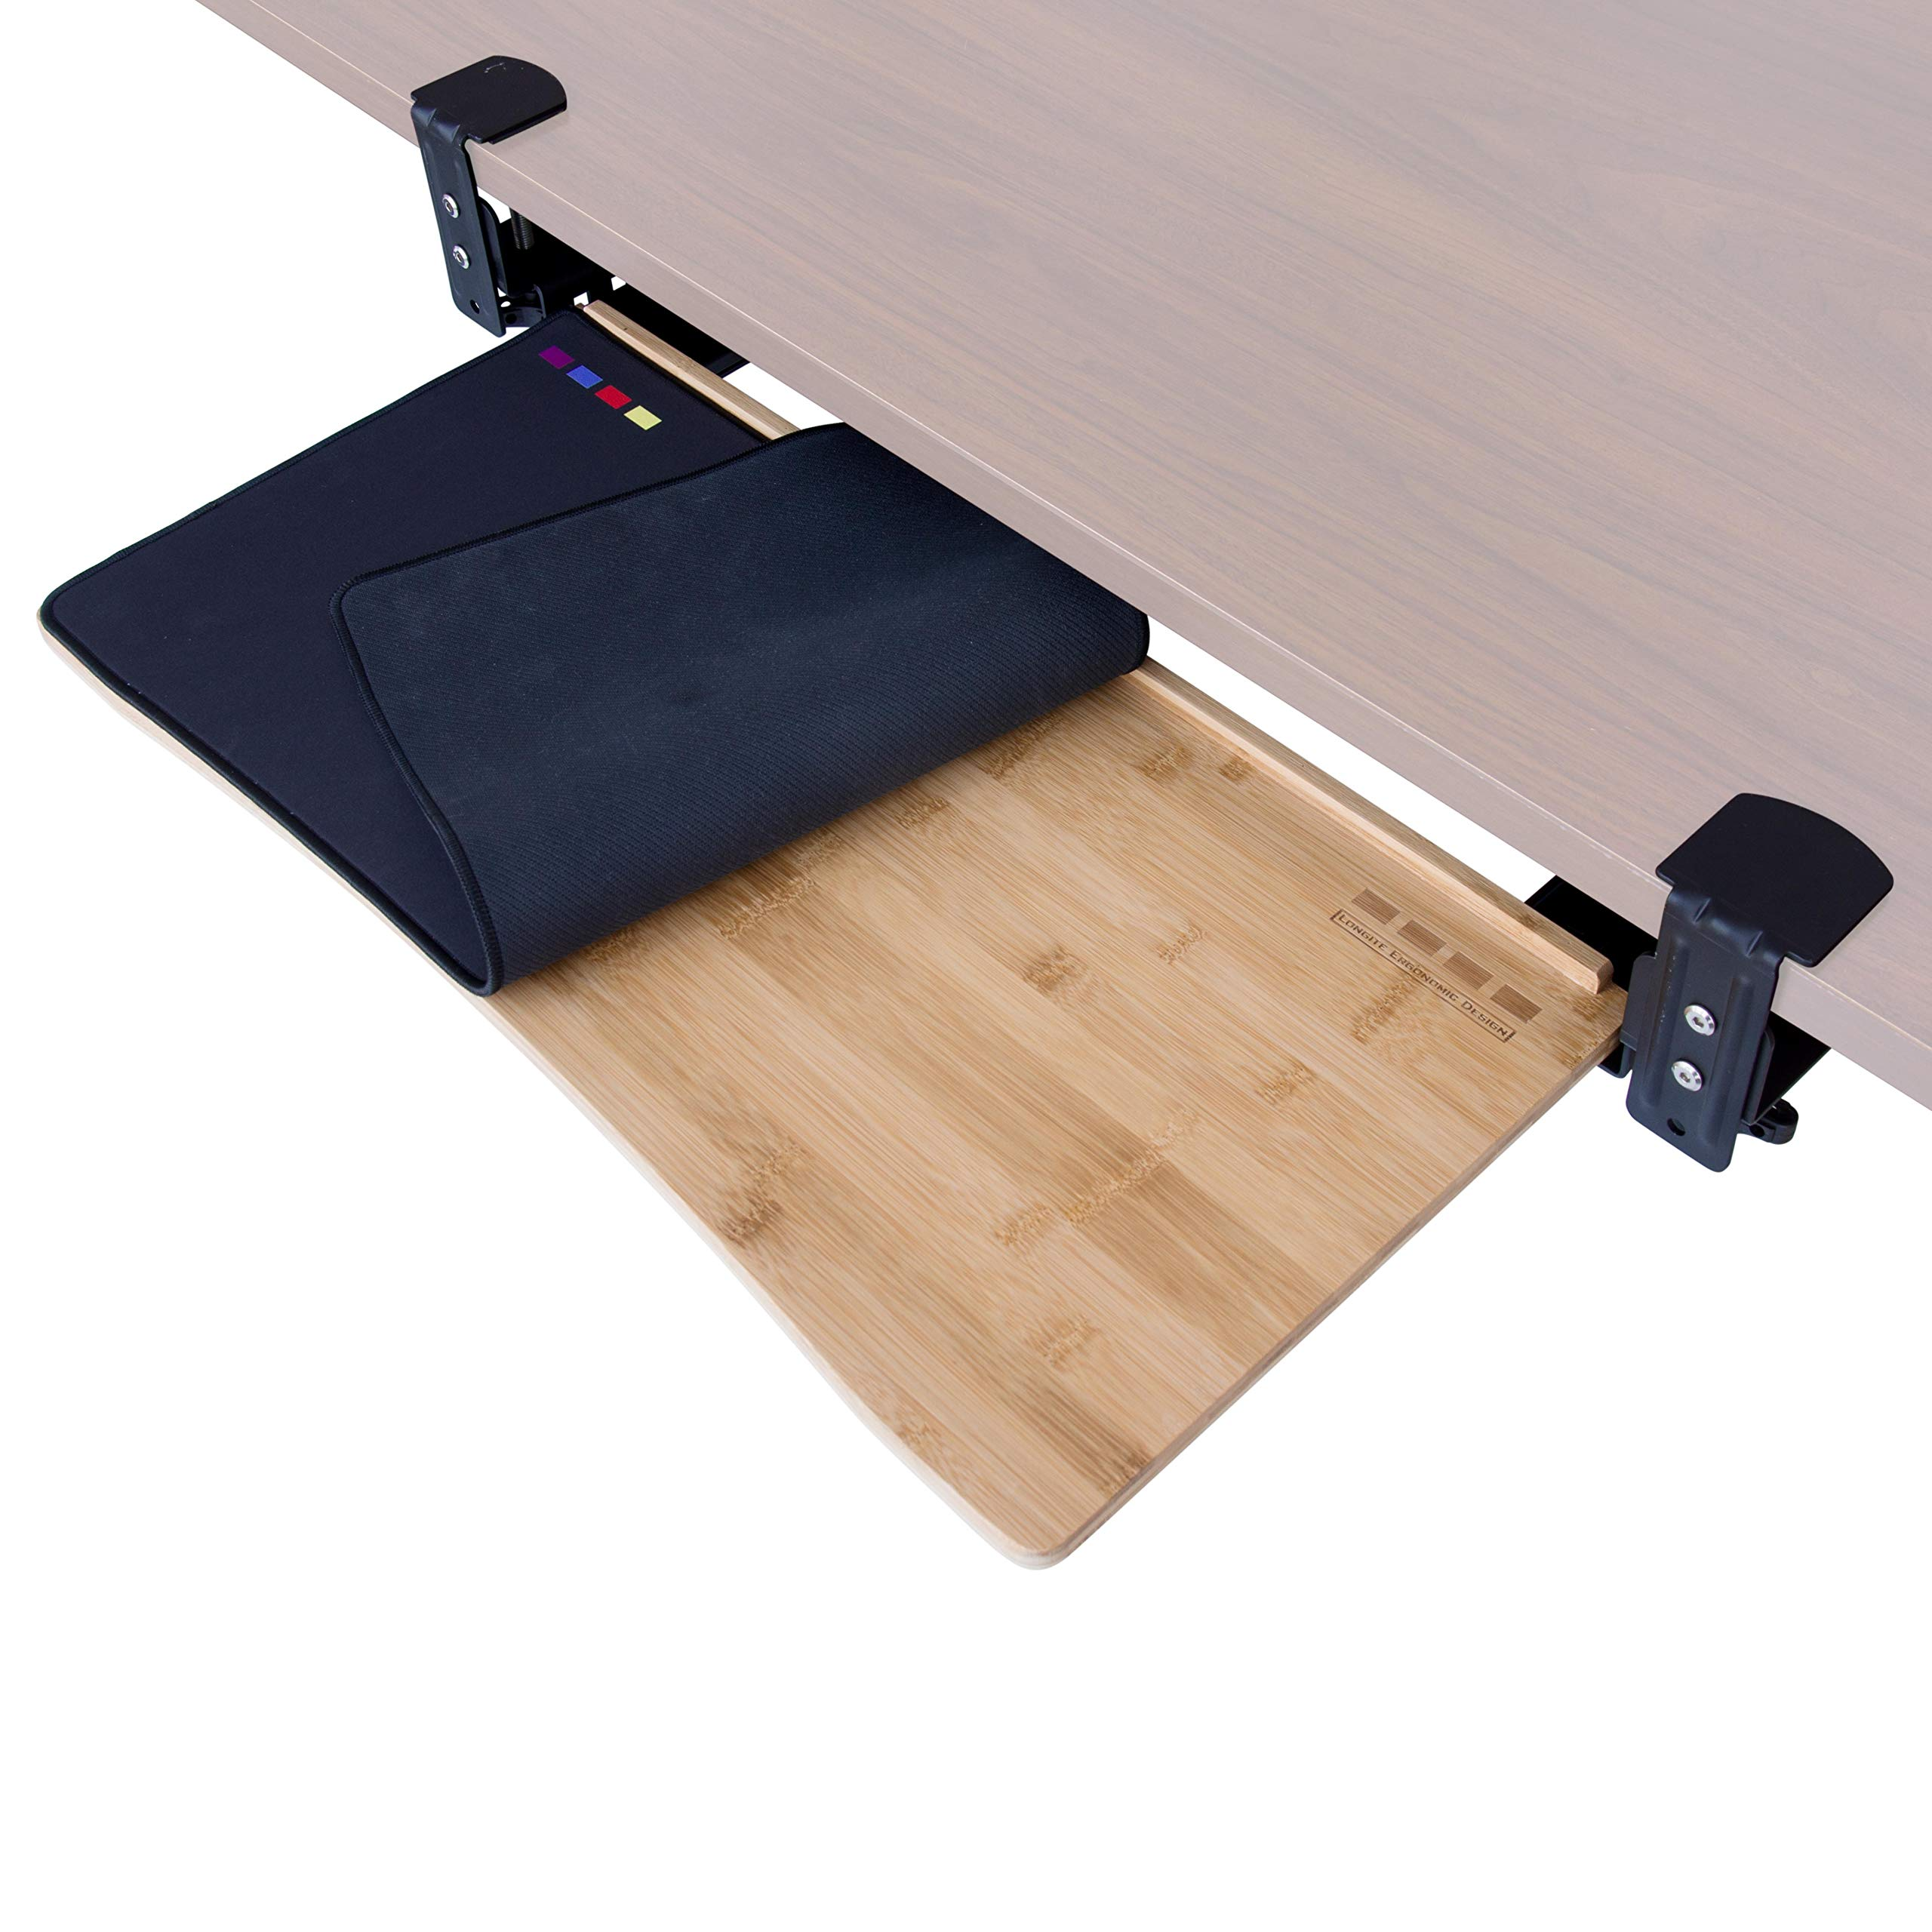 Easy Clamp On Large Keyboard Tray Under Desk (26'', Desk > 32'') - Bamboo Wood Keyboard Drawer with Adjustable Height - No Screws into Desk - Simple Assembly - with Full Size Keyboard and Mouse Pad by D'vine Dev